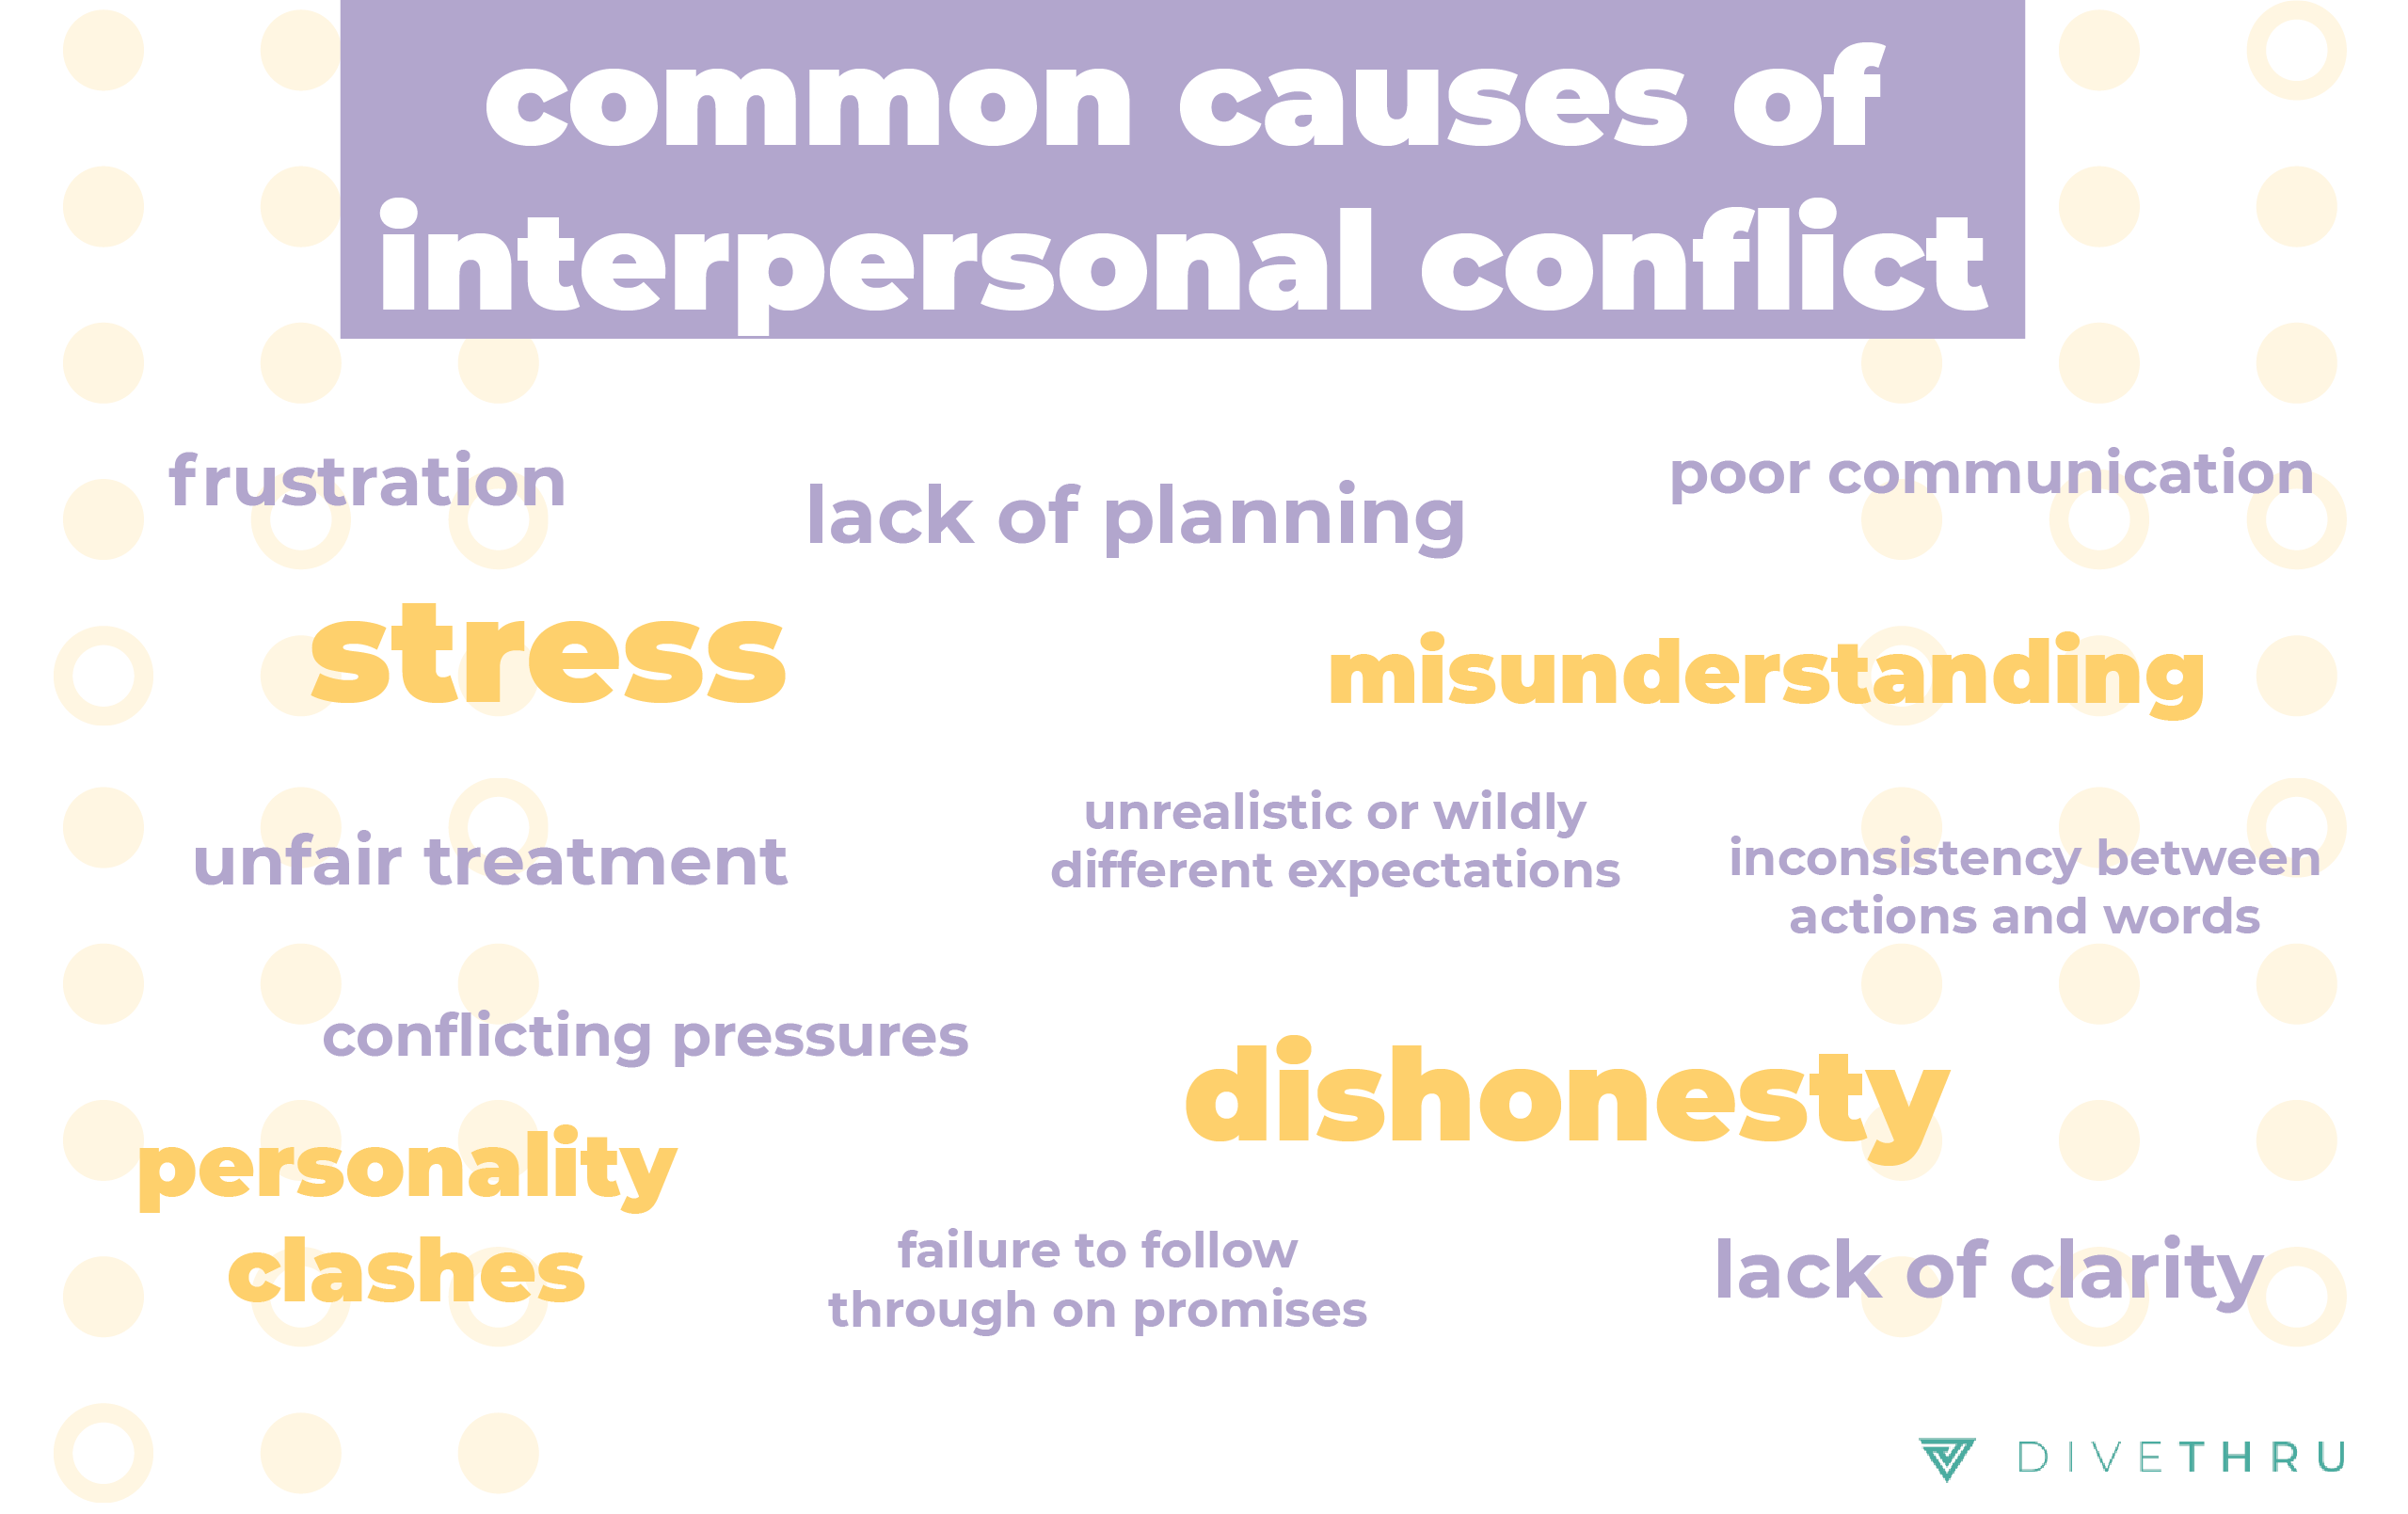 common causes of interpersonal conflict: lack of planning, dishonesty, stress, misunderstanding, unfair treatment, frustration, poor communication, conflicting pressures, failure to follow through on promises, lack of clarity, inconsistency between actions and words